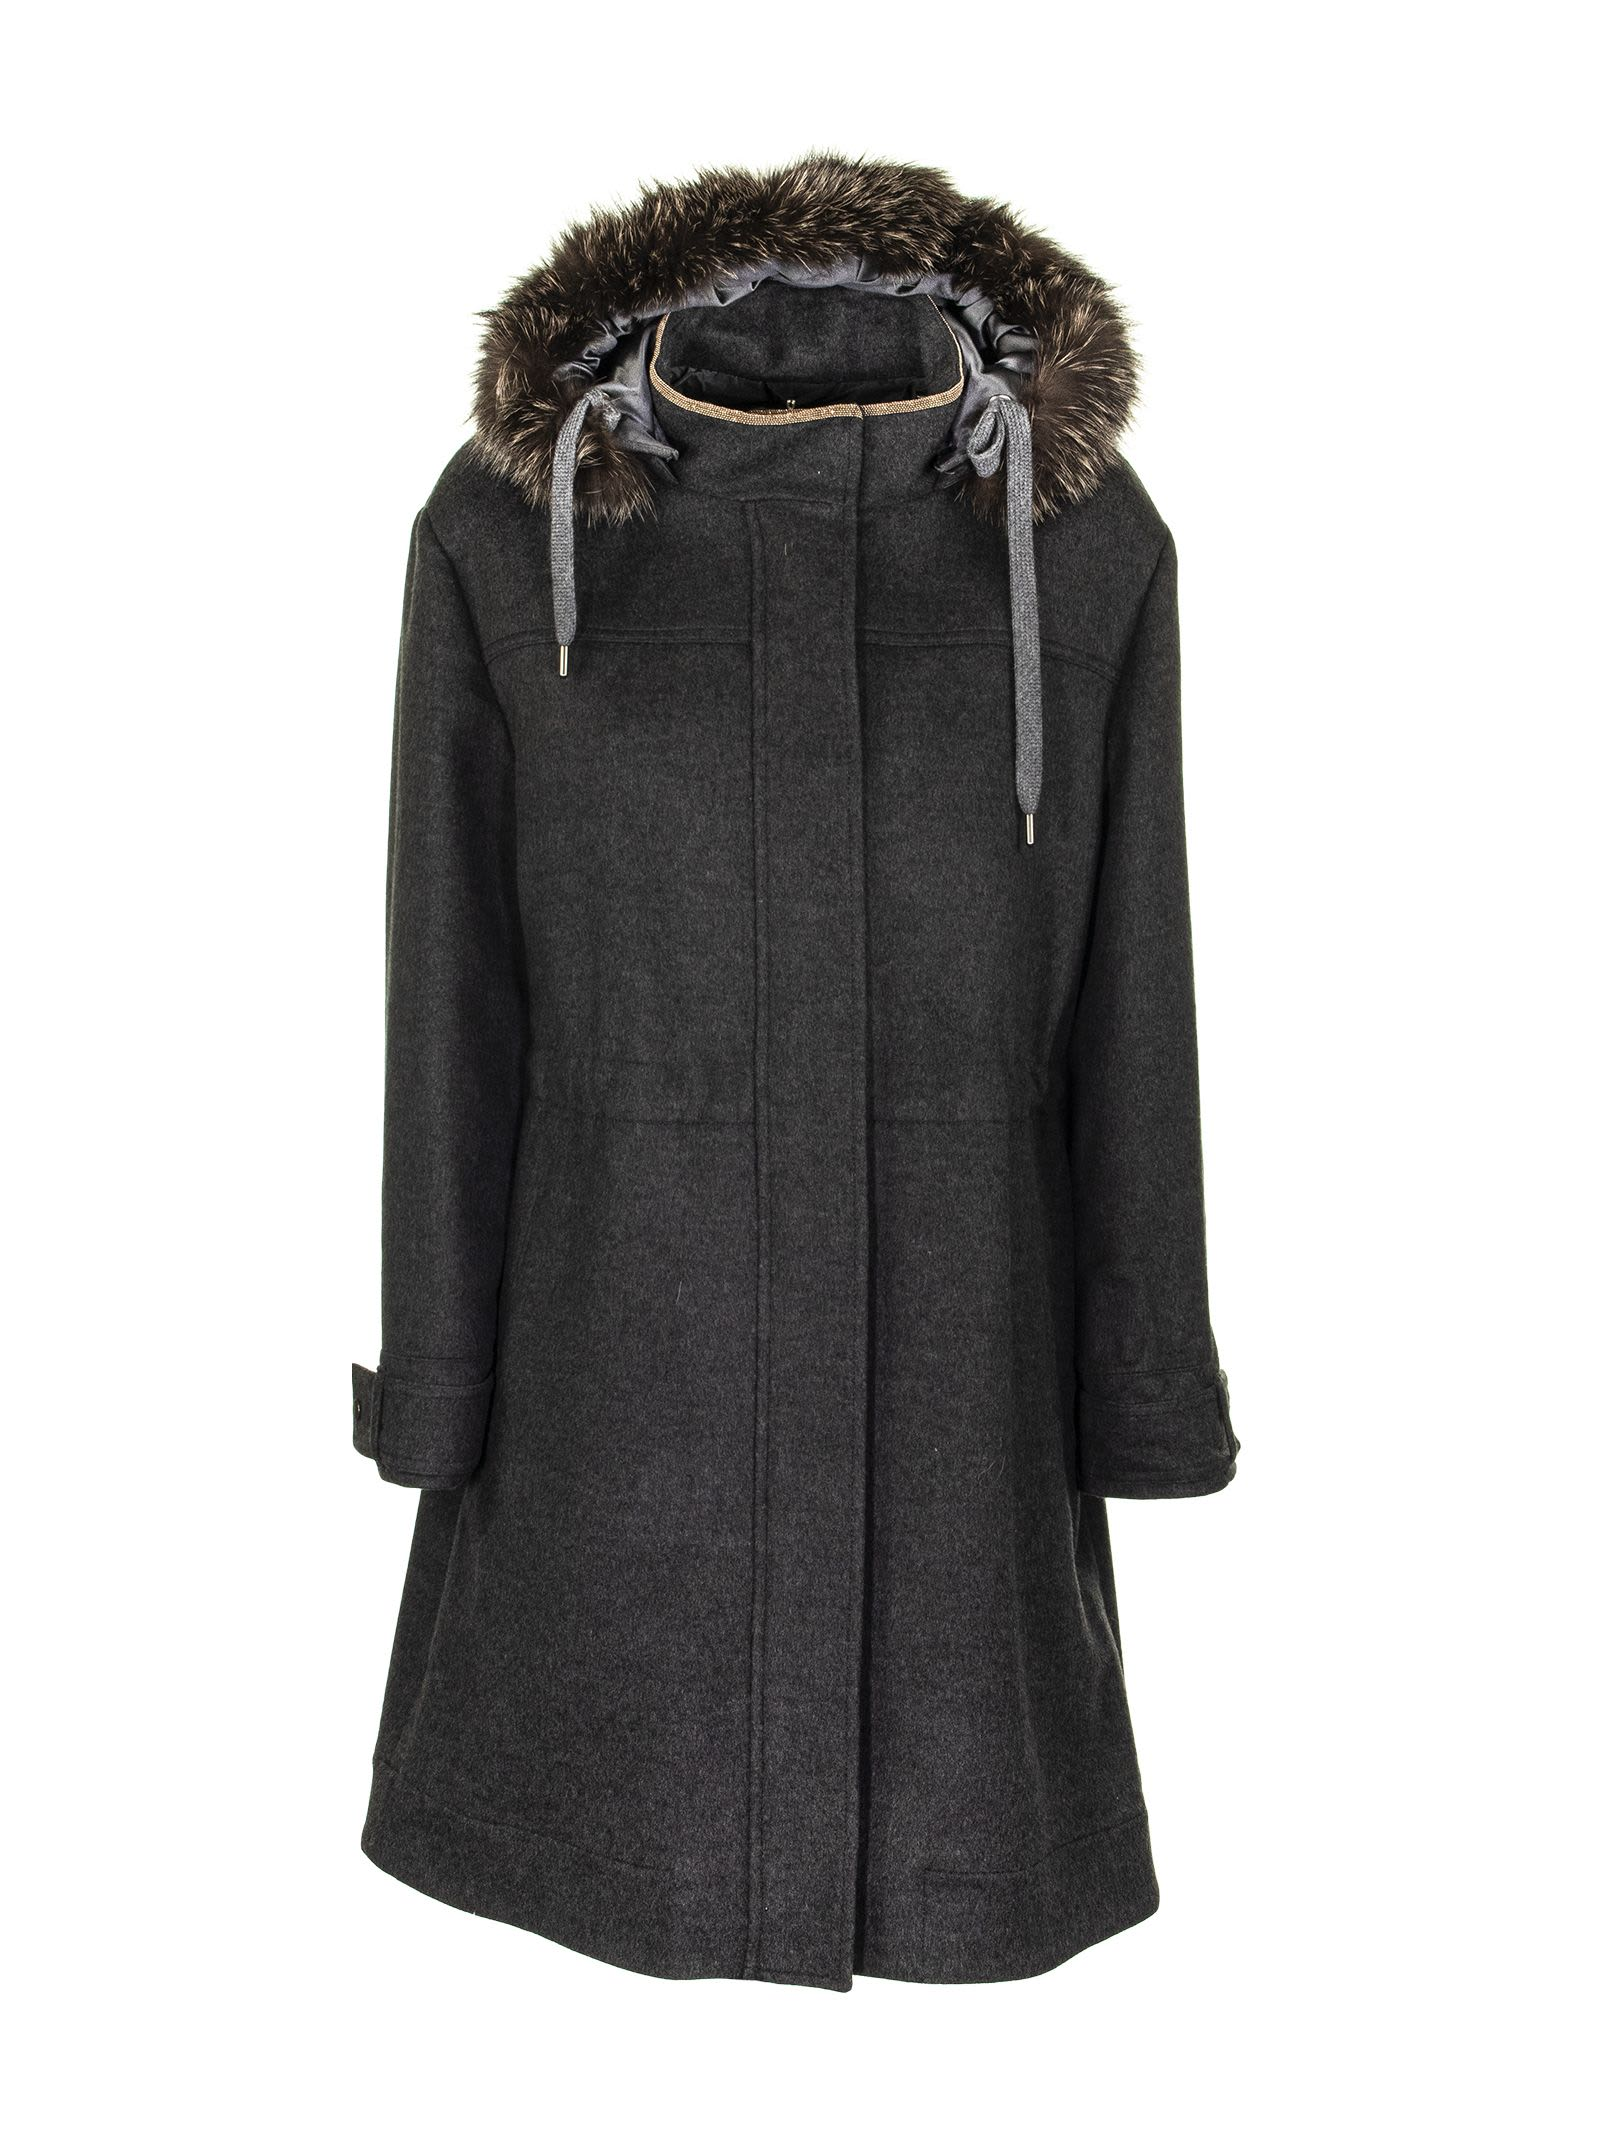 Brunello Cucinelli Outerwear Lignite Coats Fur Fox